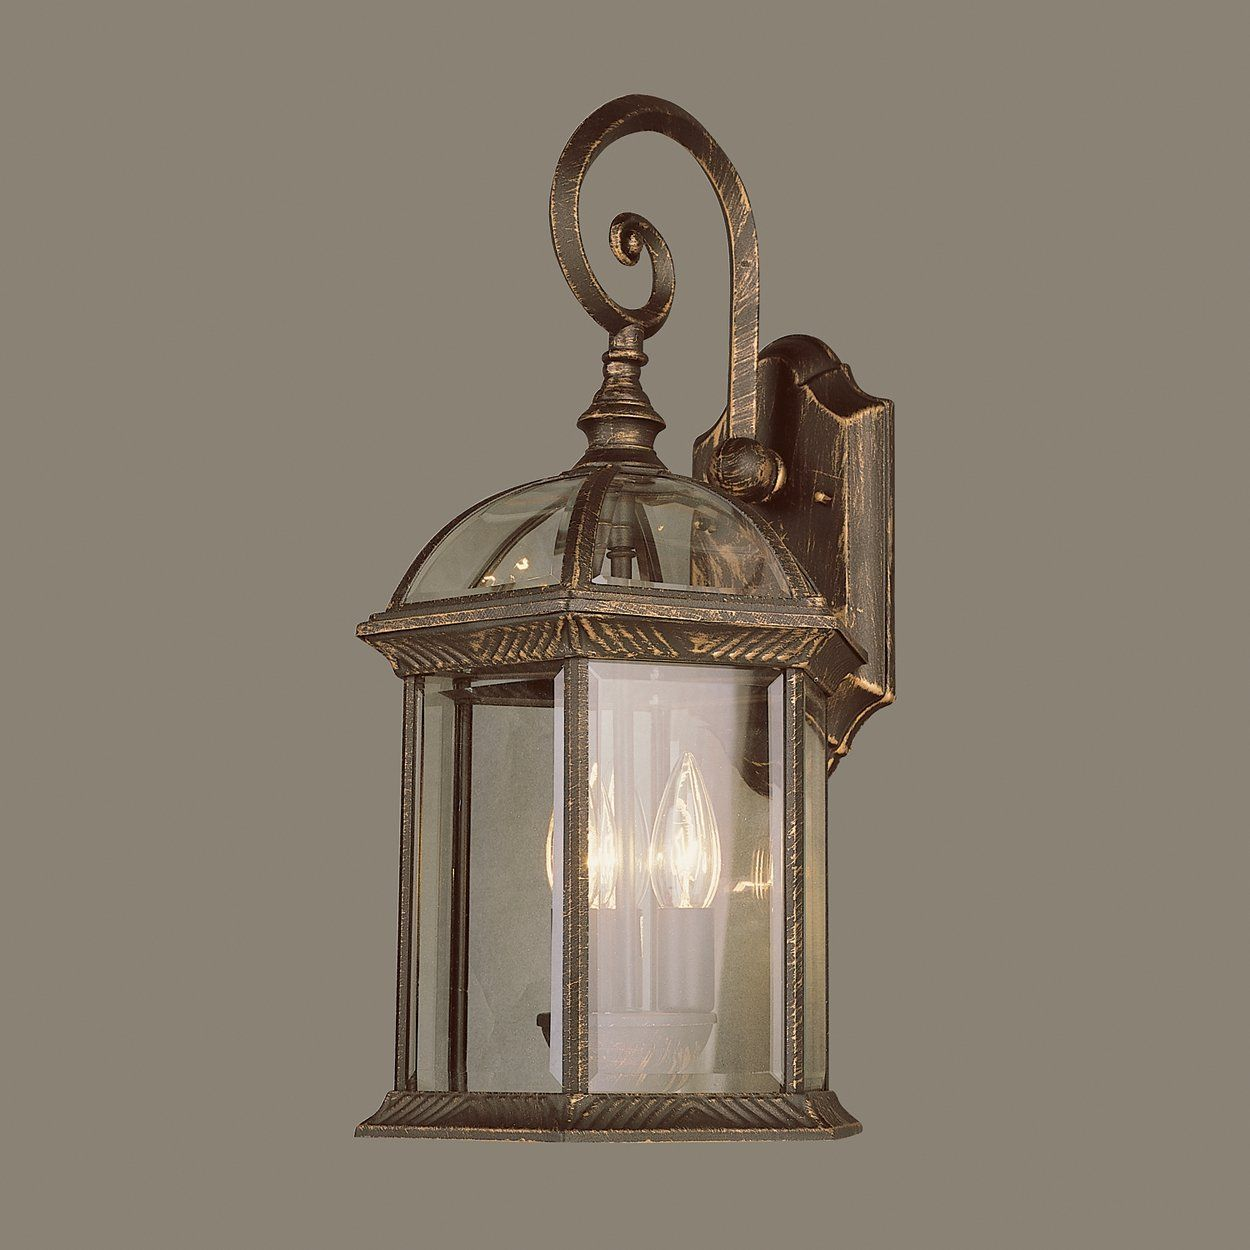 Trans globe botanica outdoor sconce atg stores traditional